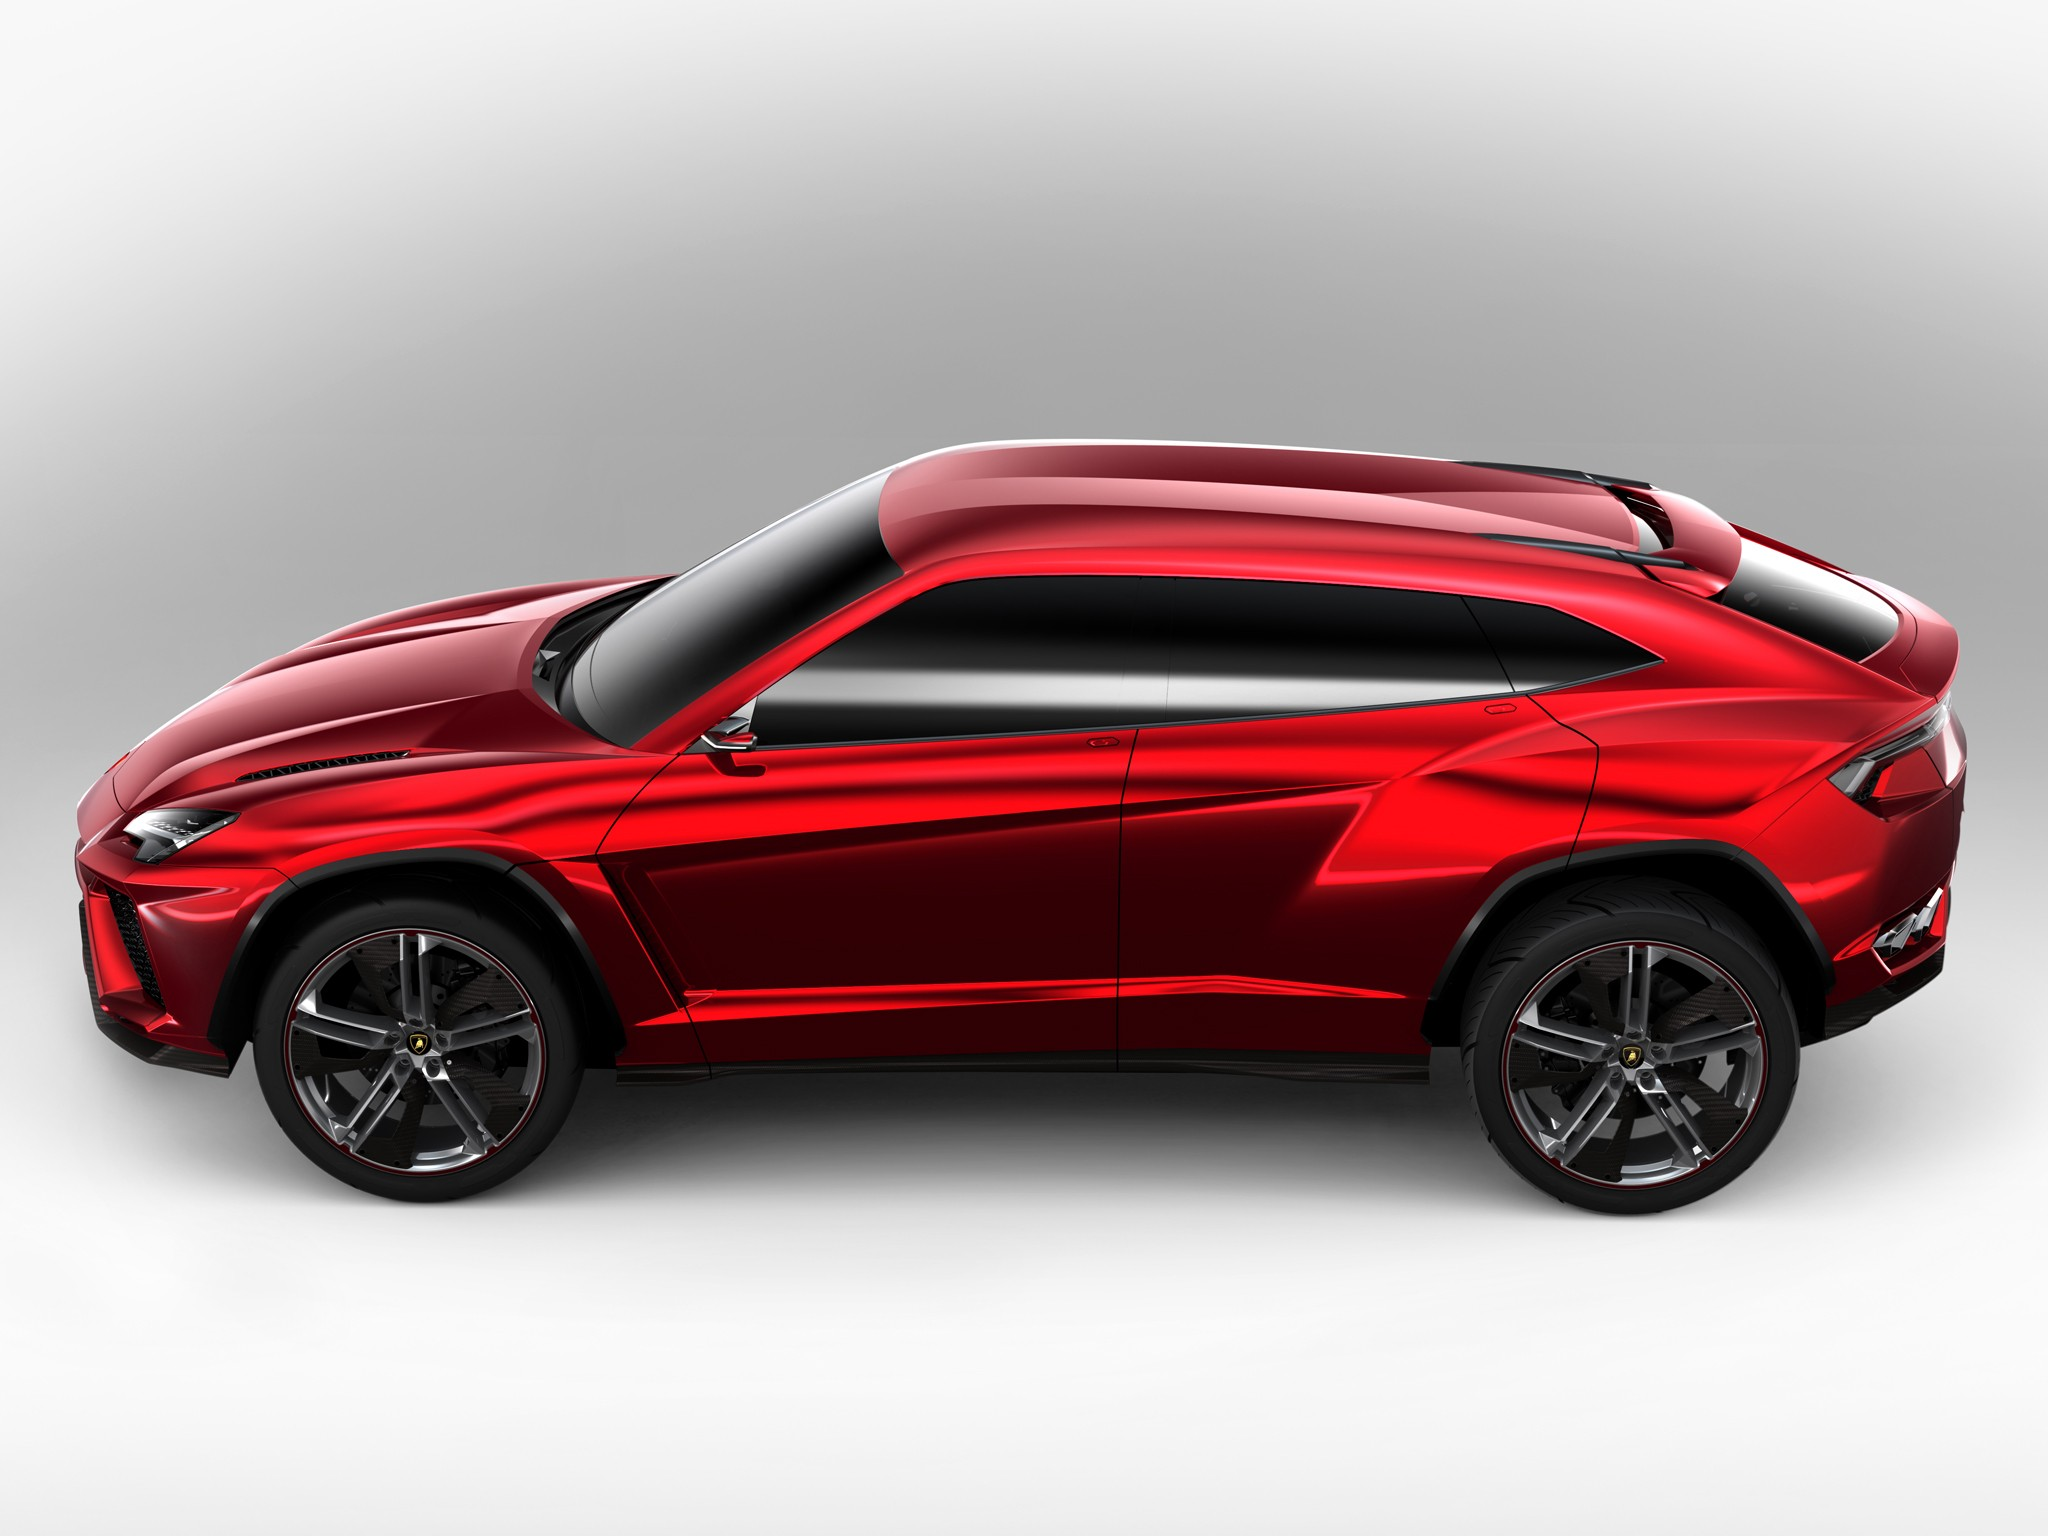 Lamborghini Eyeing Women With All New Urus Suv Autoevolution